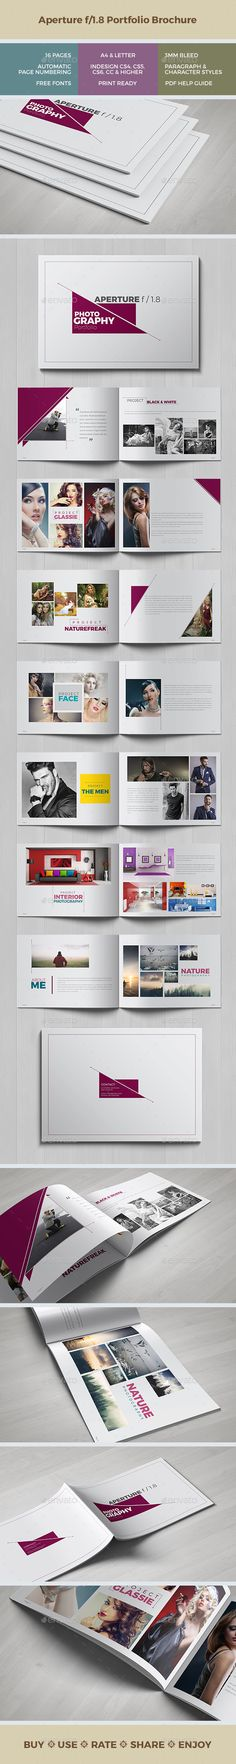 Aperture f/1.8 Portfolio - 16 Pages Template InDesign INDD #design Download: http://graphicriver.net/item/aperture-f18-portfolio-16-pages/14071861?ref=ksioks